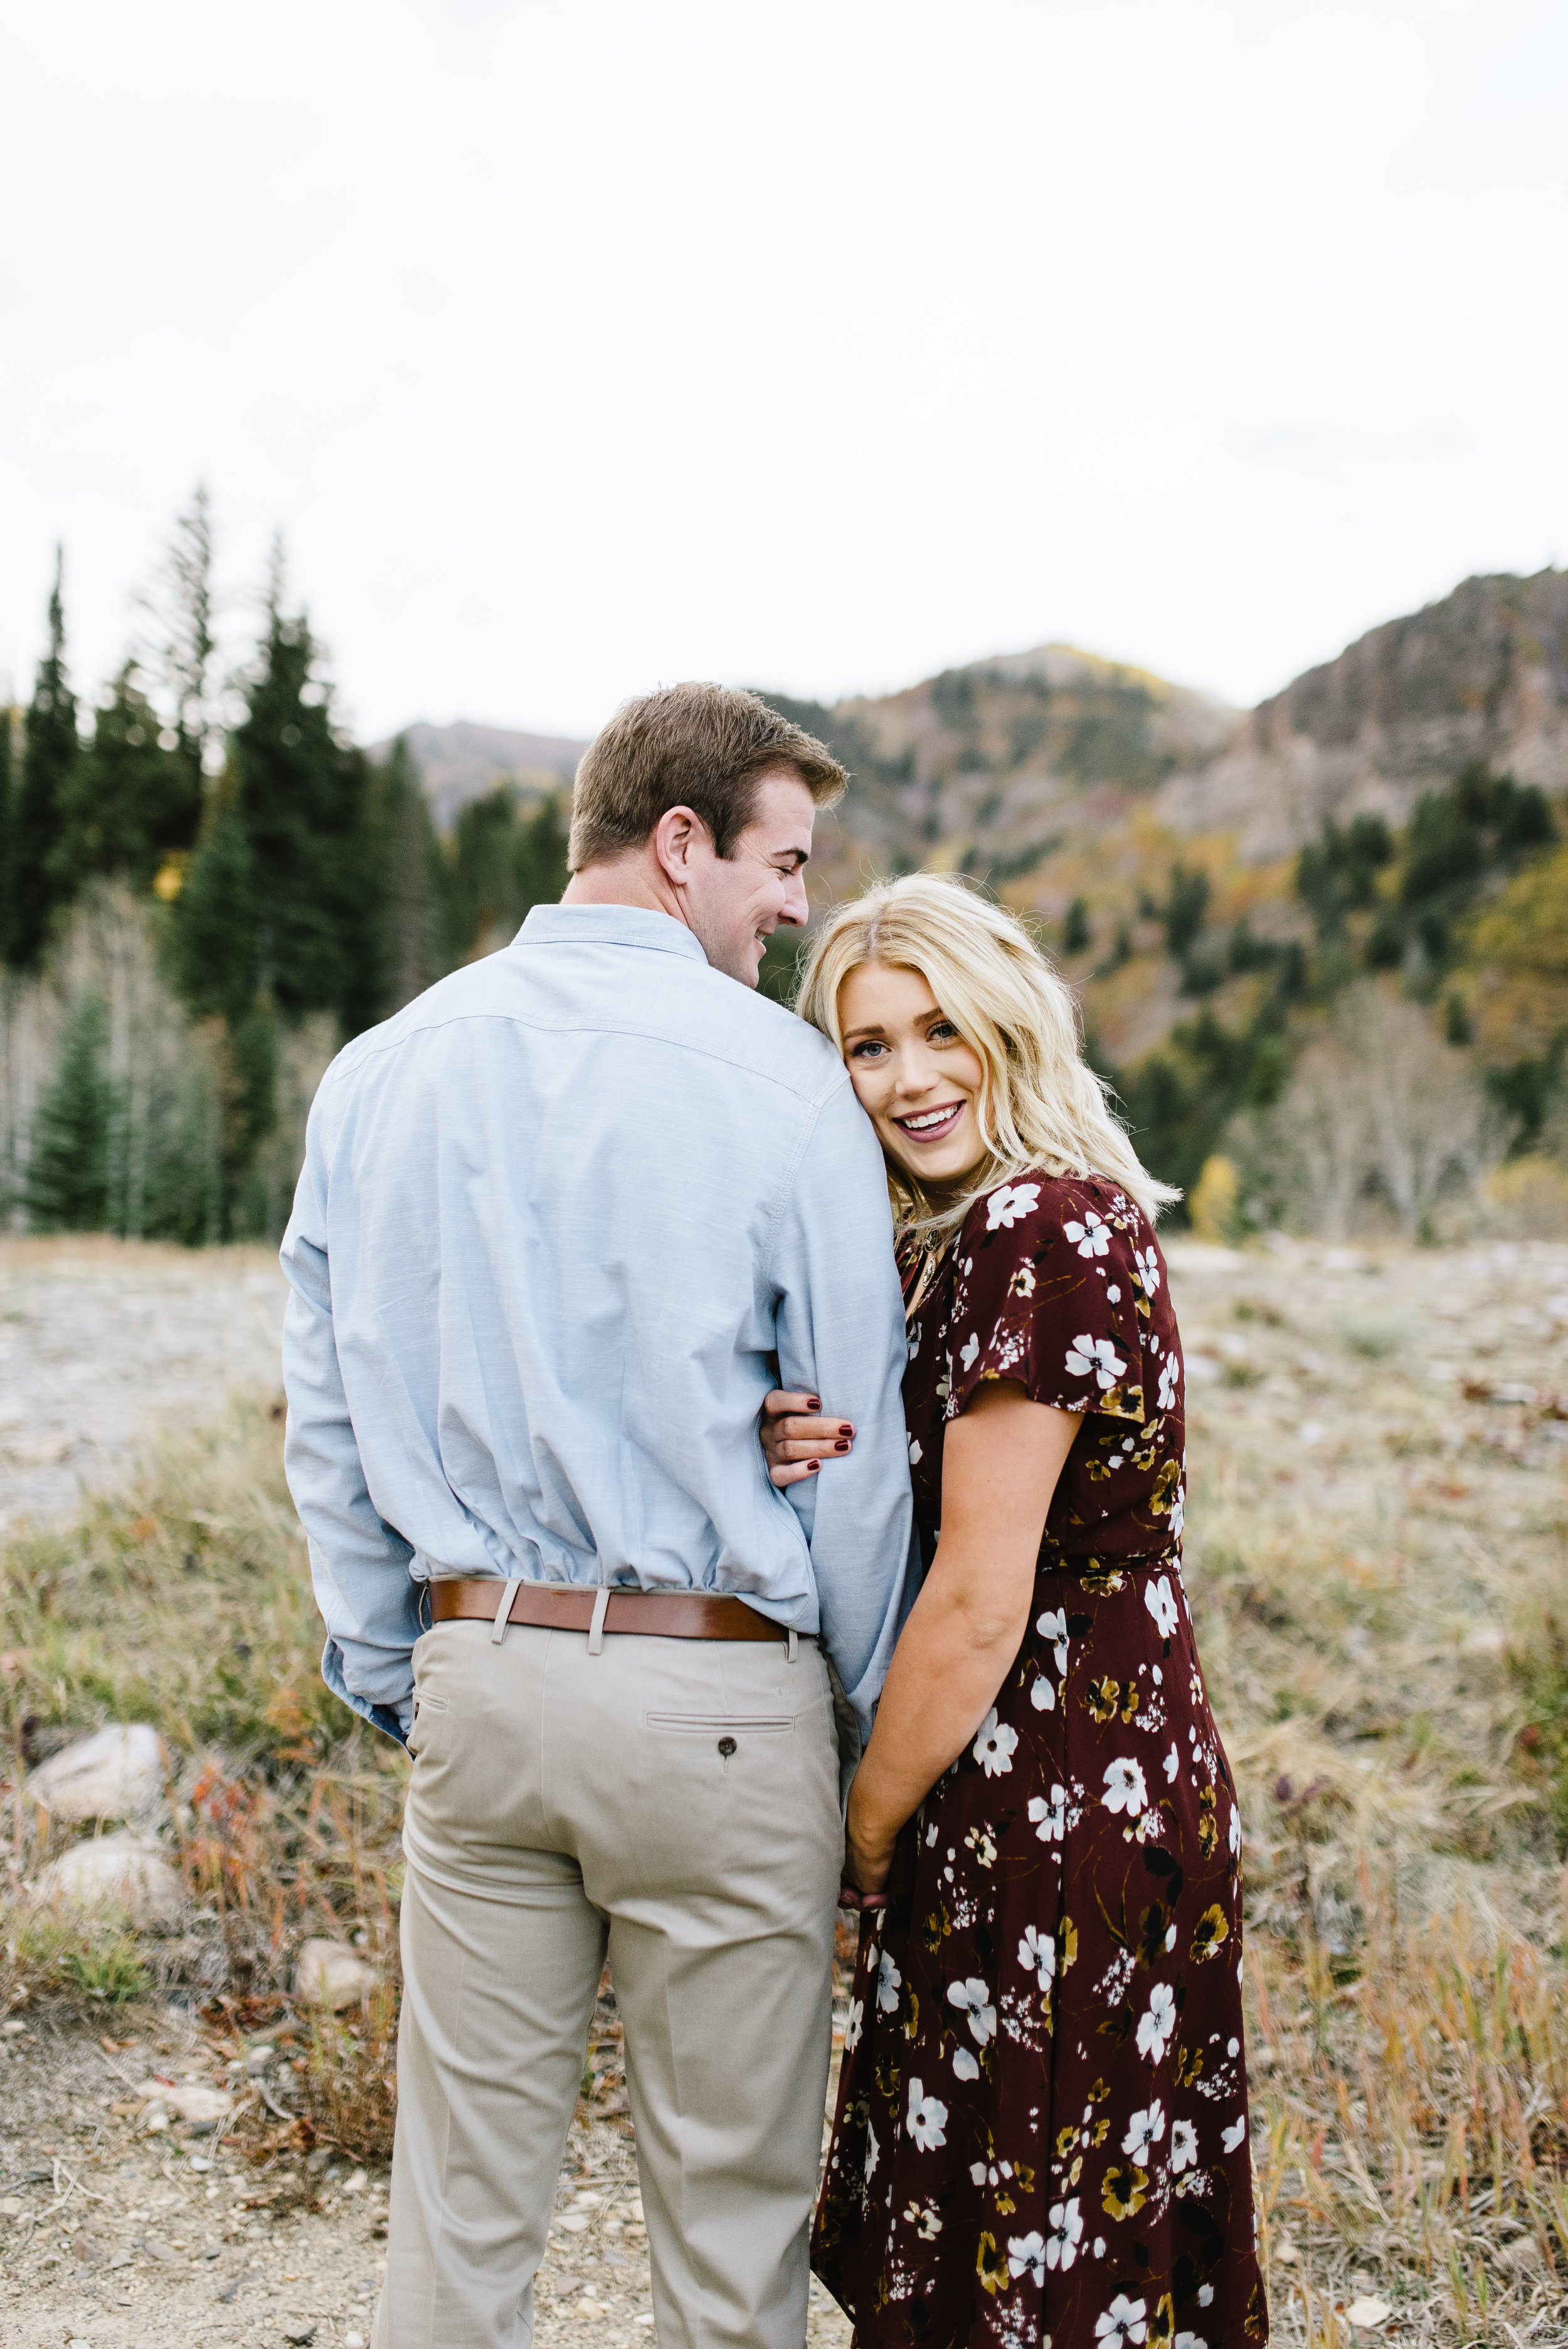 Taylor+Joe Engagements-138.jpg